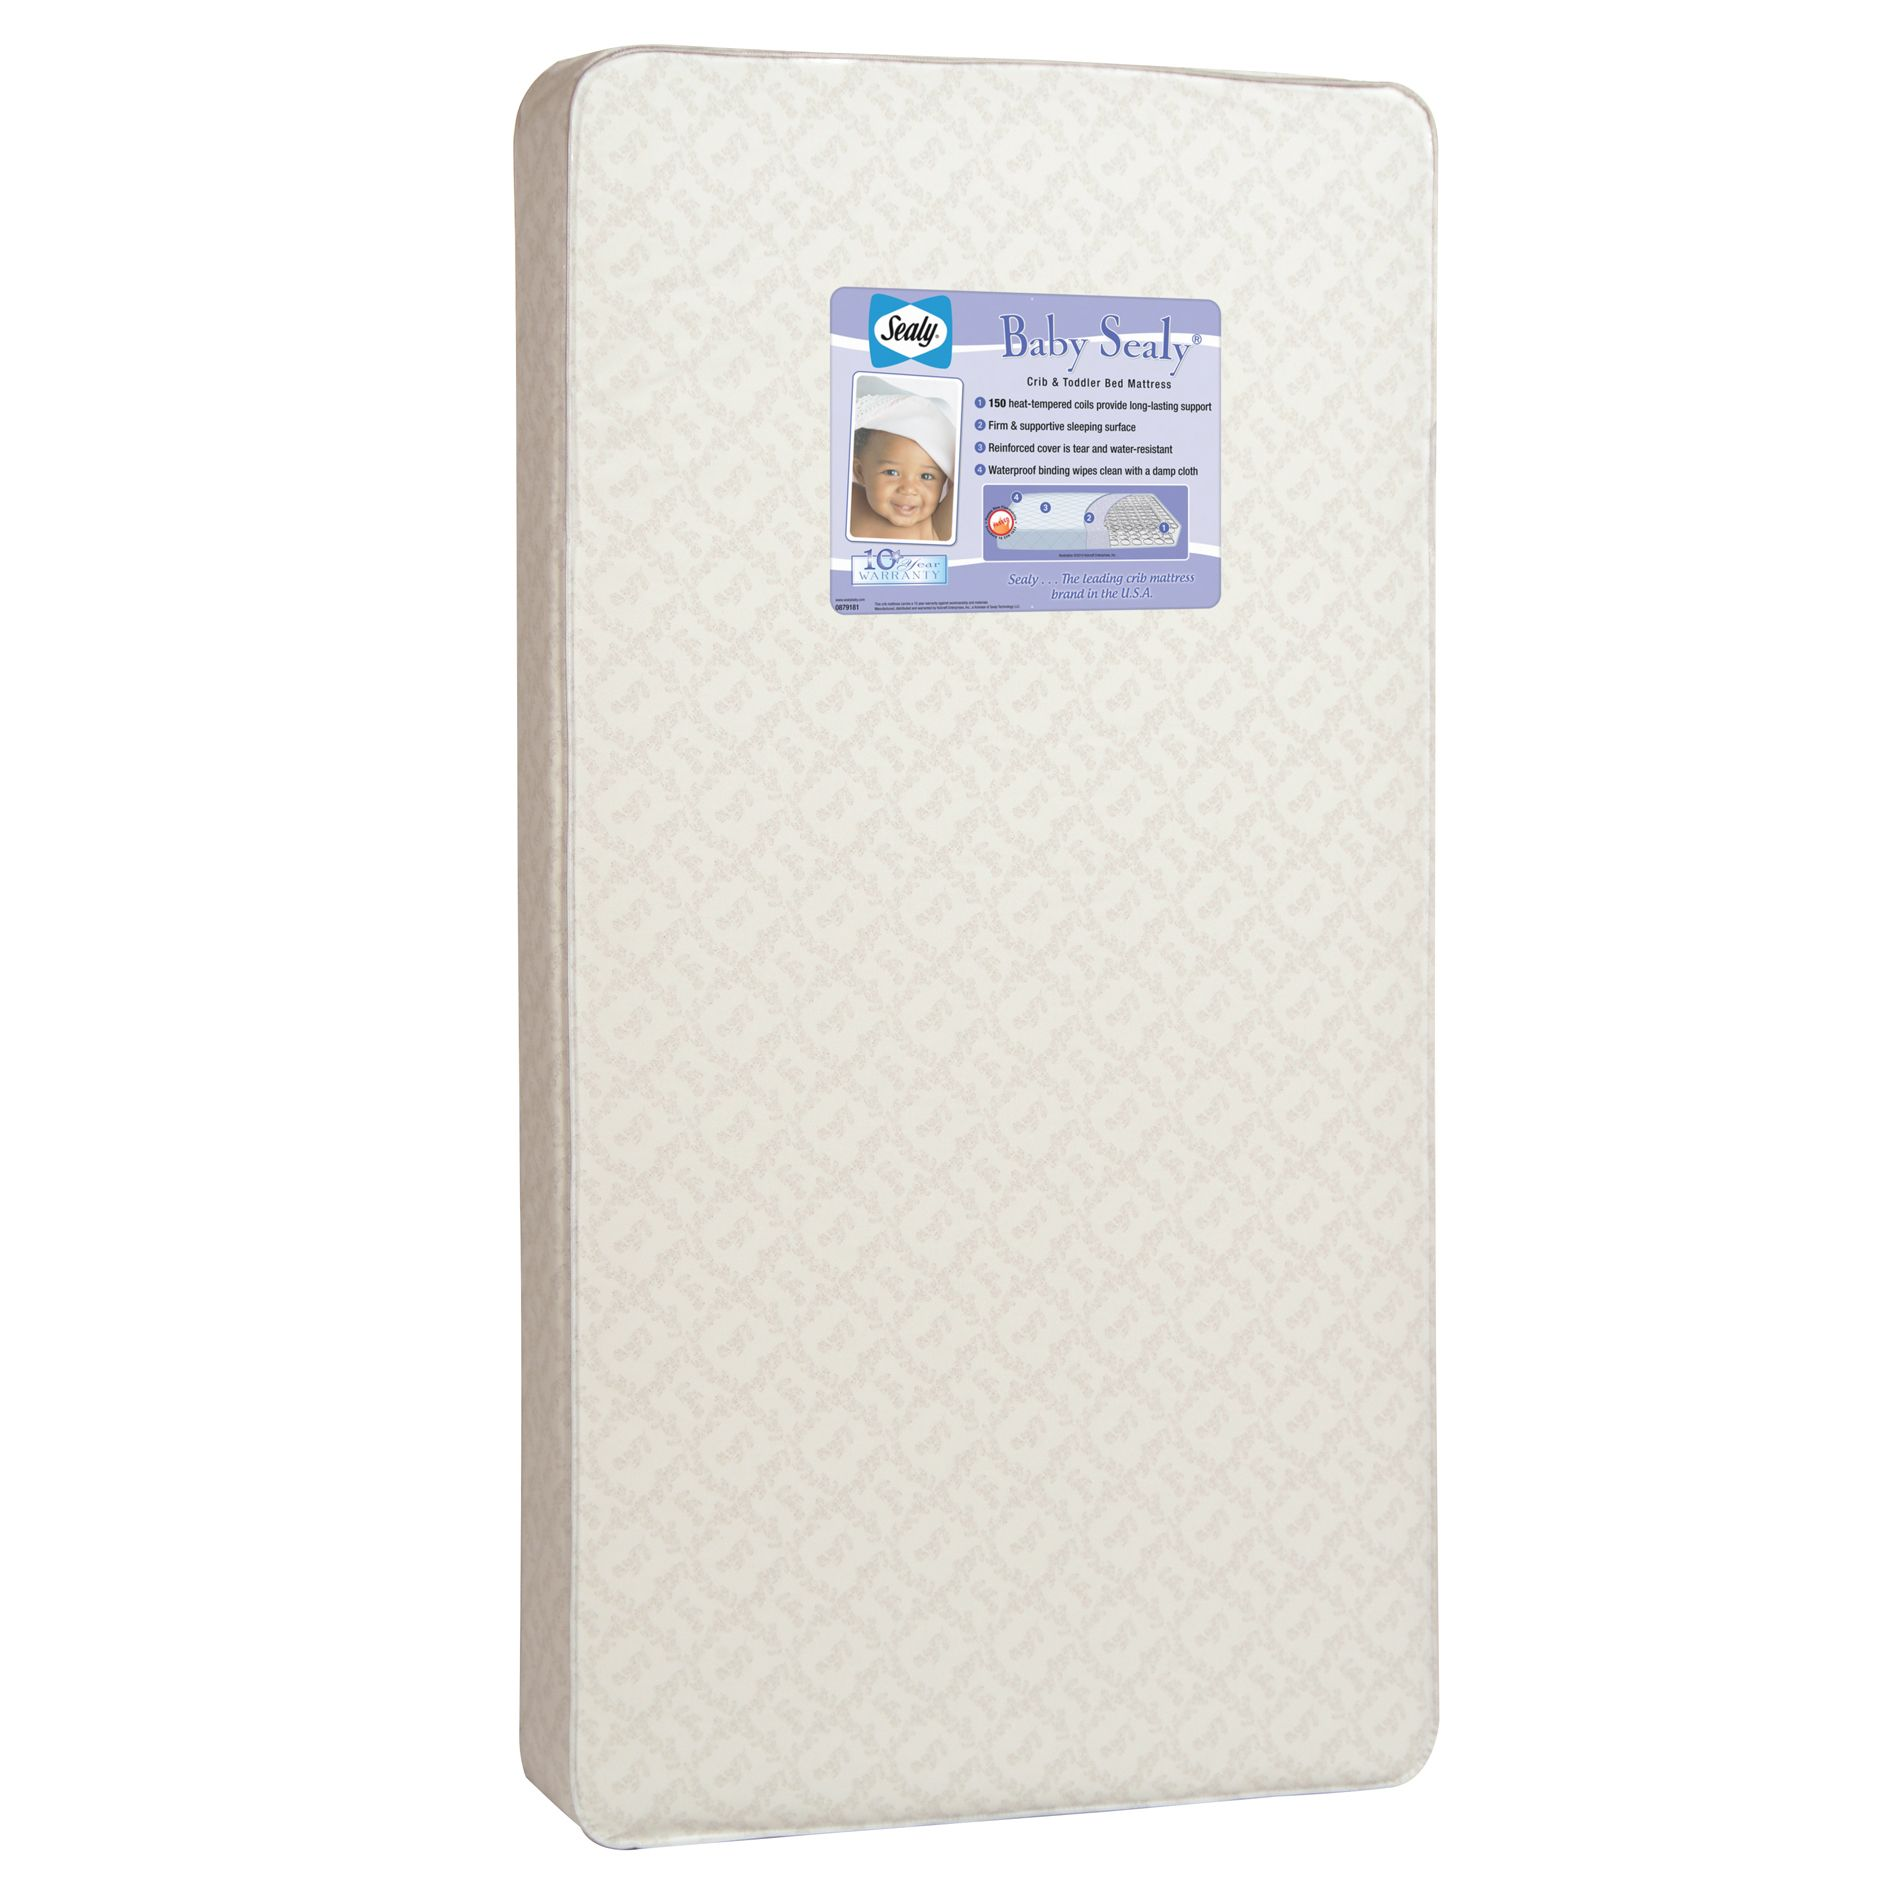 Kolcraft Baby Sealy Crib And Toddler Bed Mattress